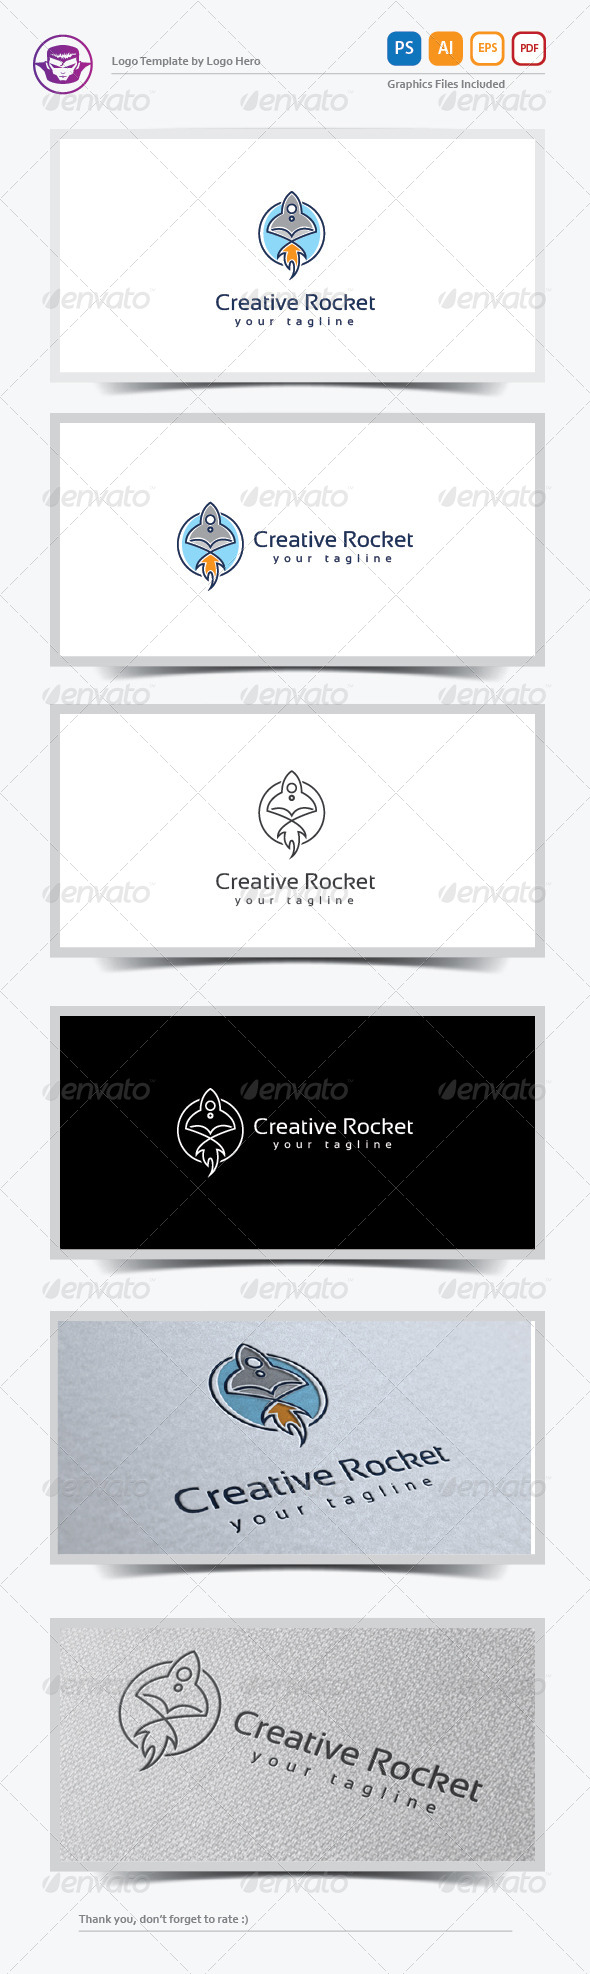 Creative Rocket Logo Template